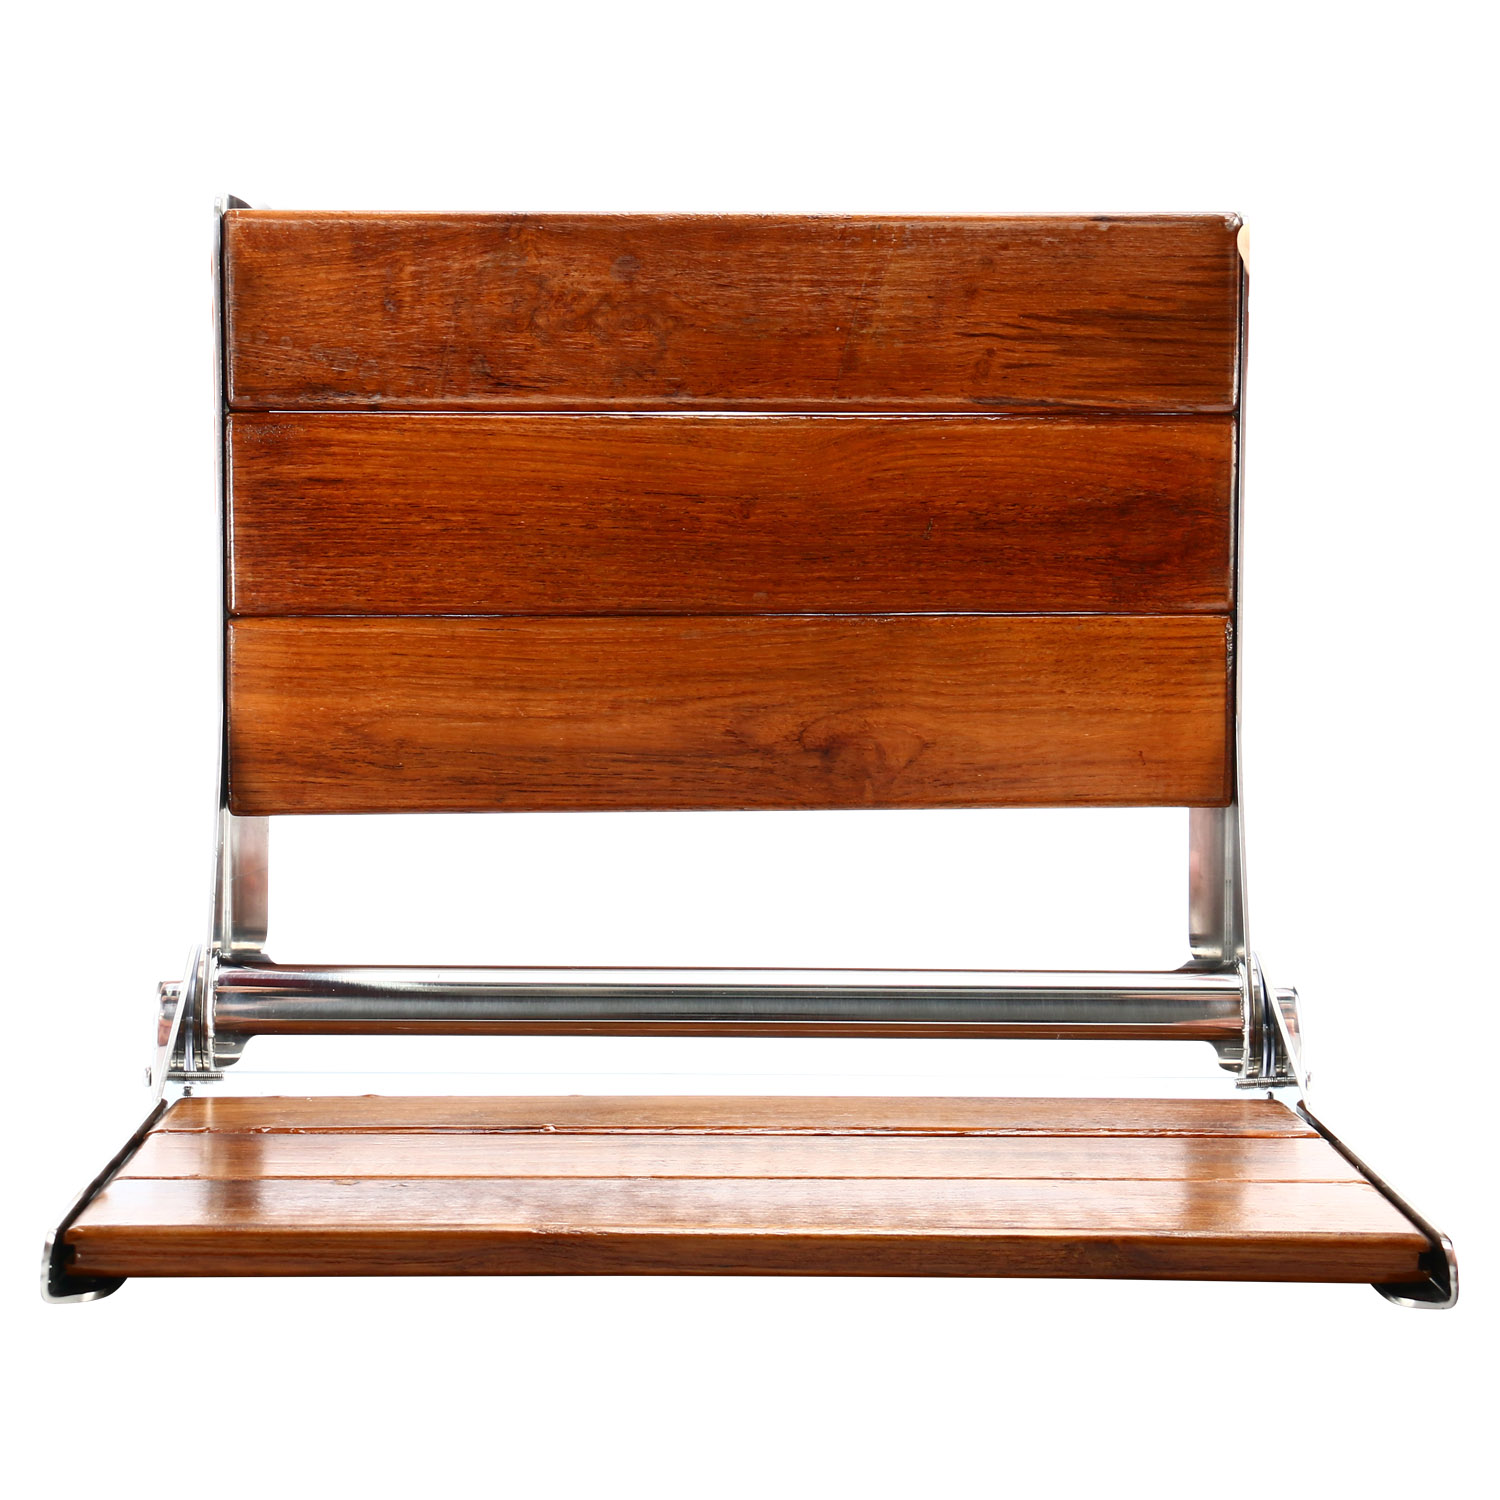 Details About 18 Folding Teak Wood Shower Bench Seat Wall Mount Chair Foldable Us